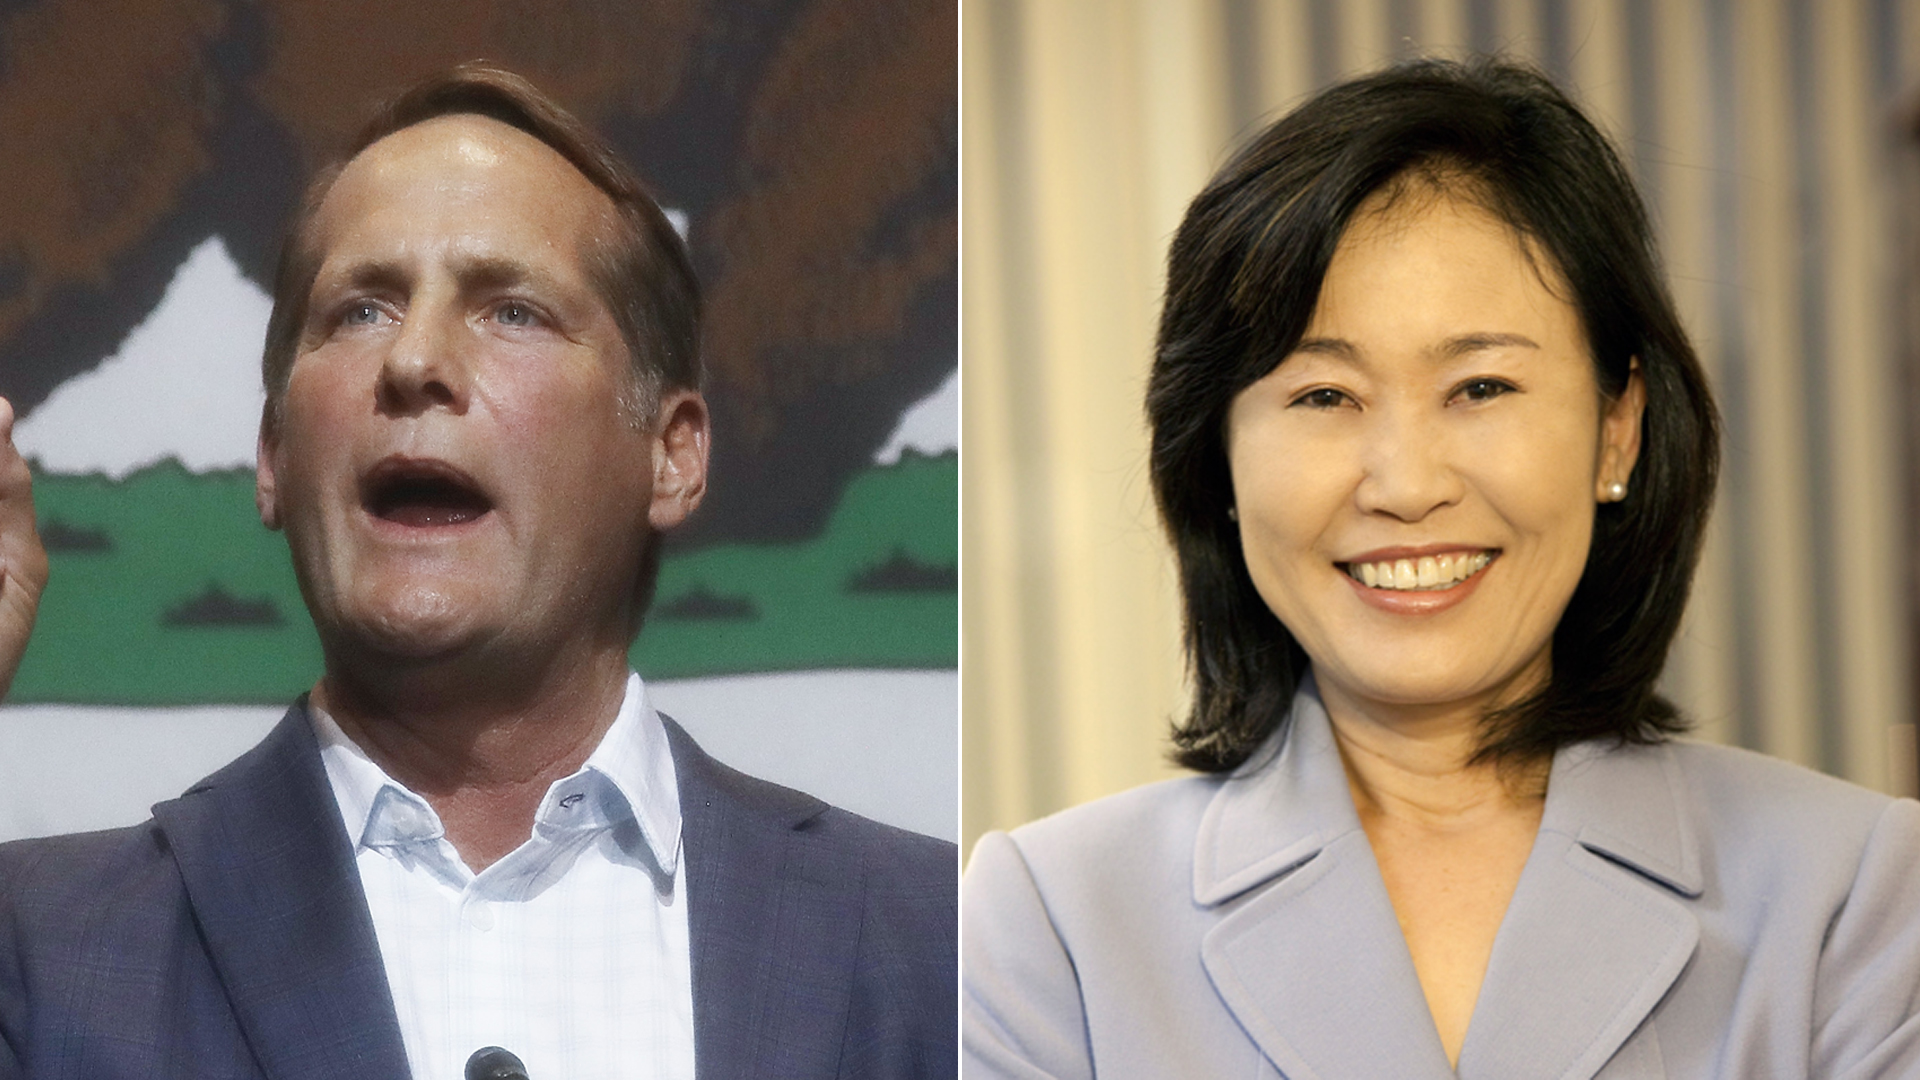 From left: Harley Rouda speaks at a campaign event in Fullerton on Oct. 4, 2018, and Michelle Steel is seen in her official portrait for the Orange County Board of Supervisors. (Credit: Mario Tama / Getty Images)